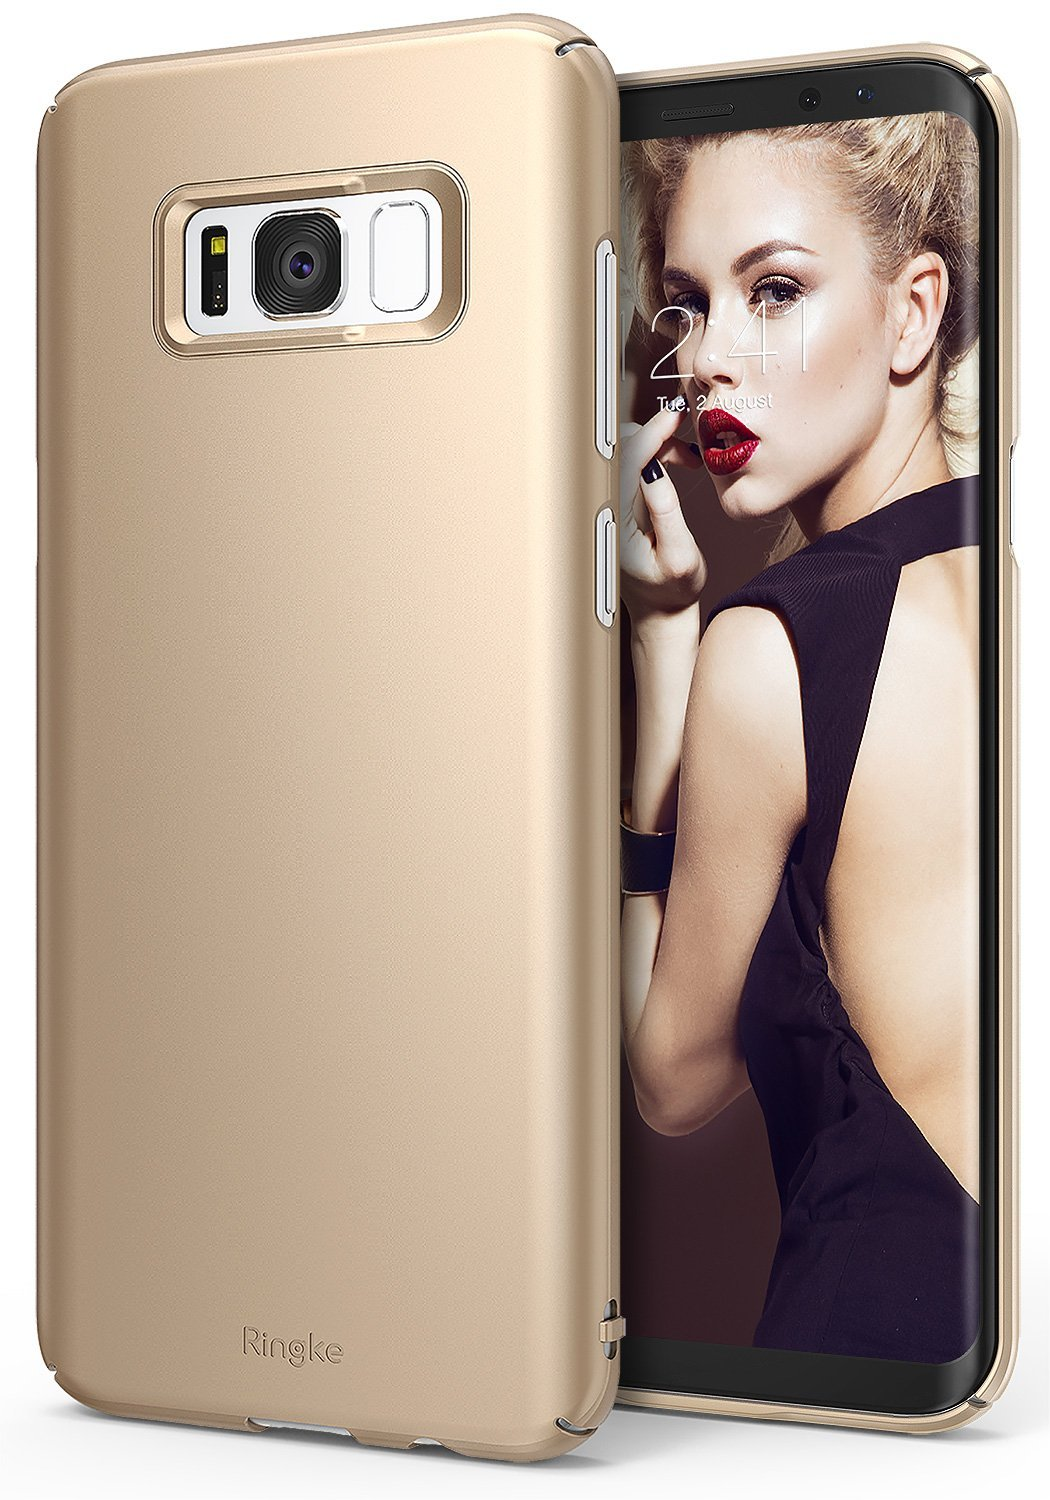 Etui Ringke Slim Θήκη Samsung Galaxy S8 Plus - Royal Gold (B06XBVF595)